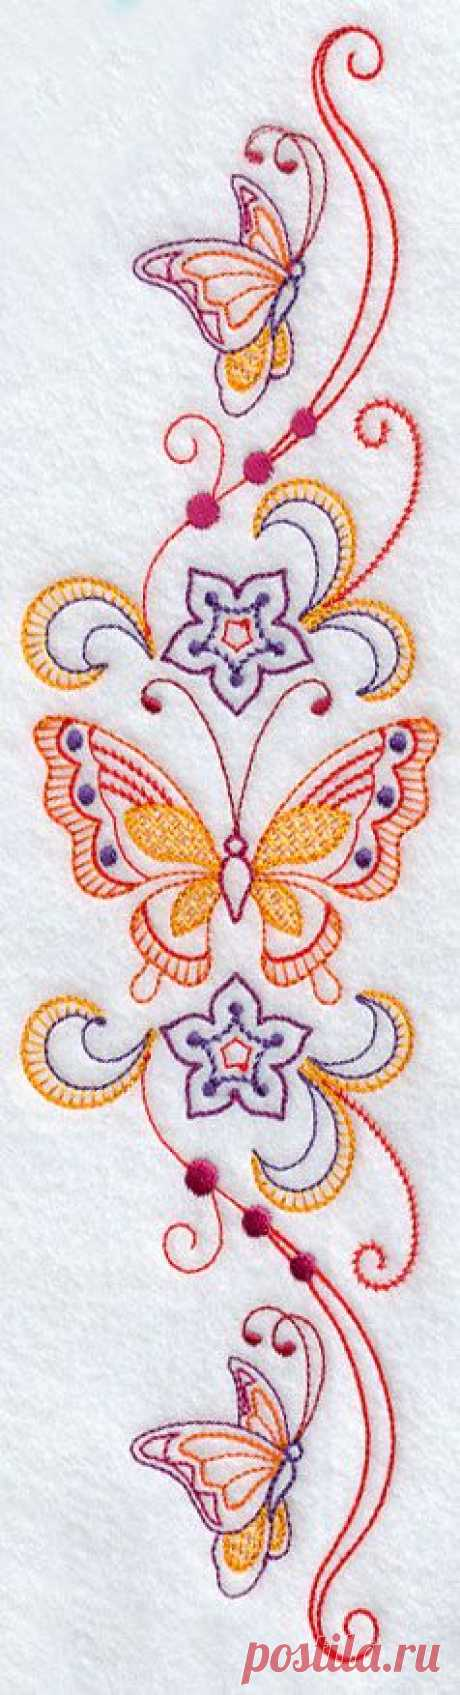 Butterfly pillowcase design | Pinterest: the tool for search and storage of interesting ideas